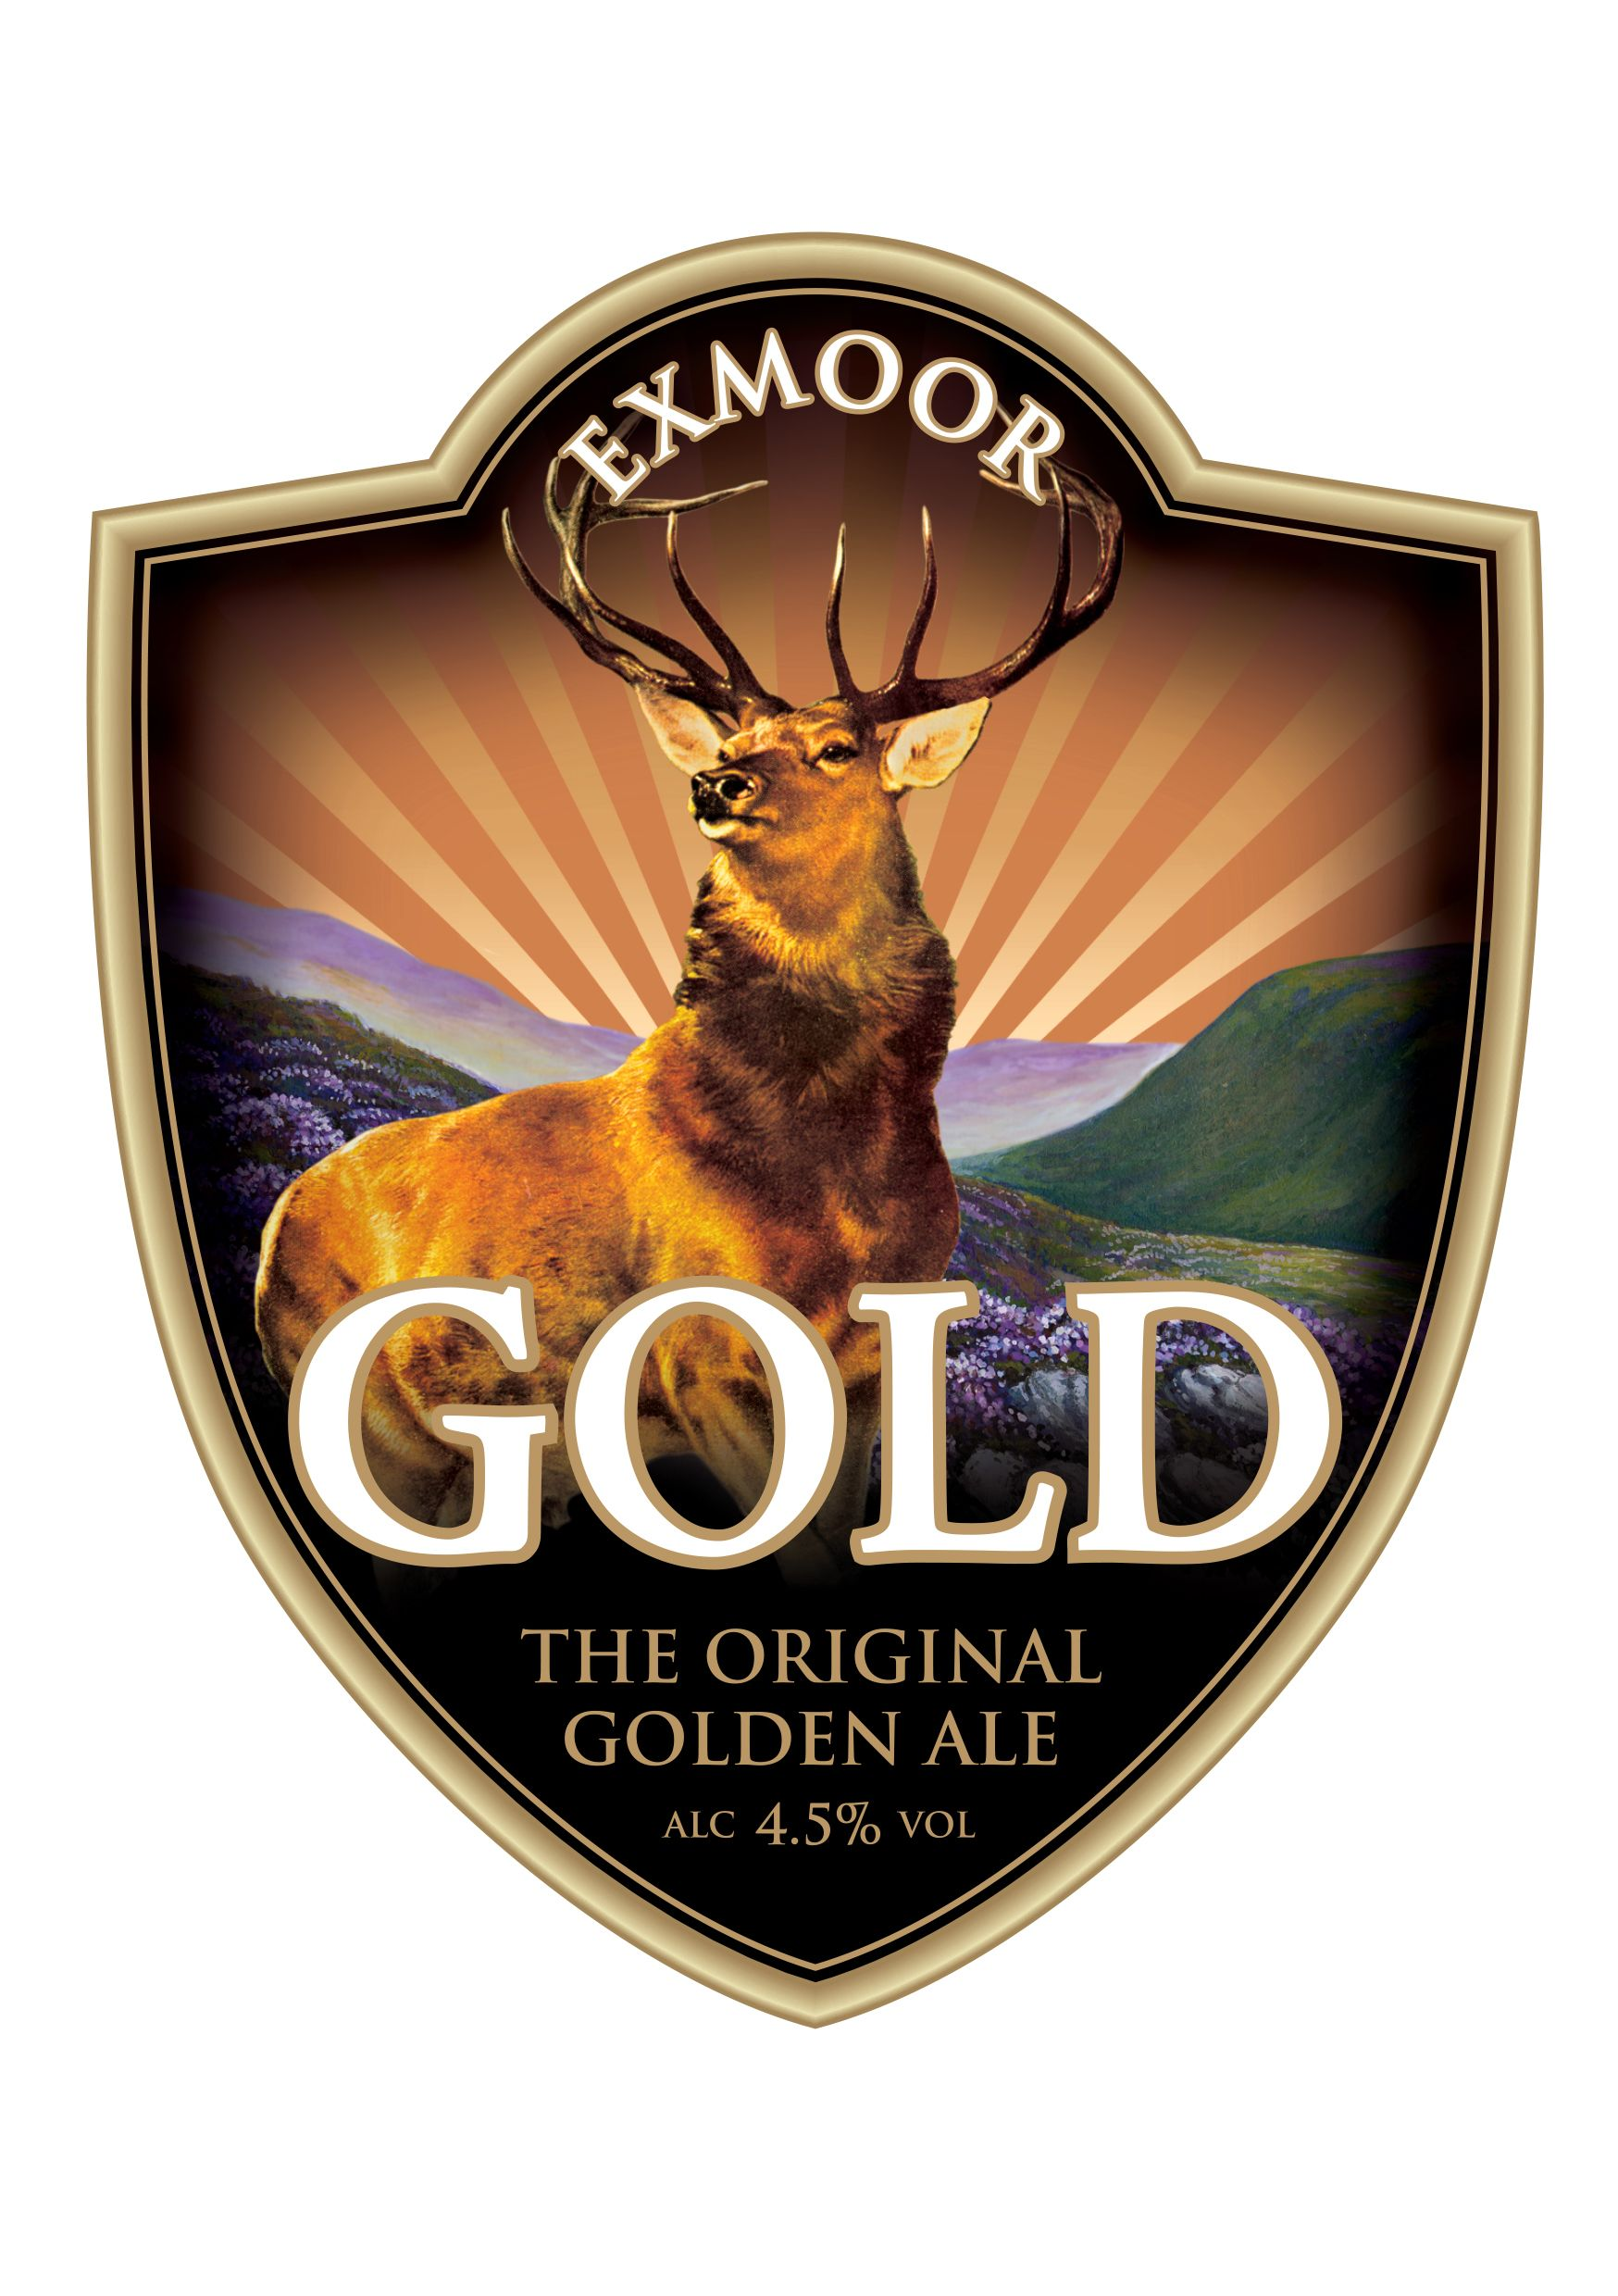 Wiveliscombe's Exmoor Ales wins CAMRA South-West golden ale category